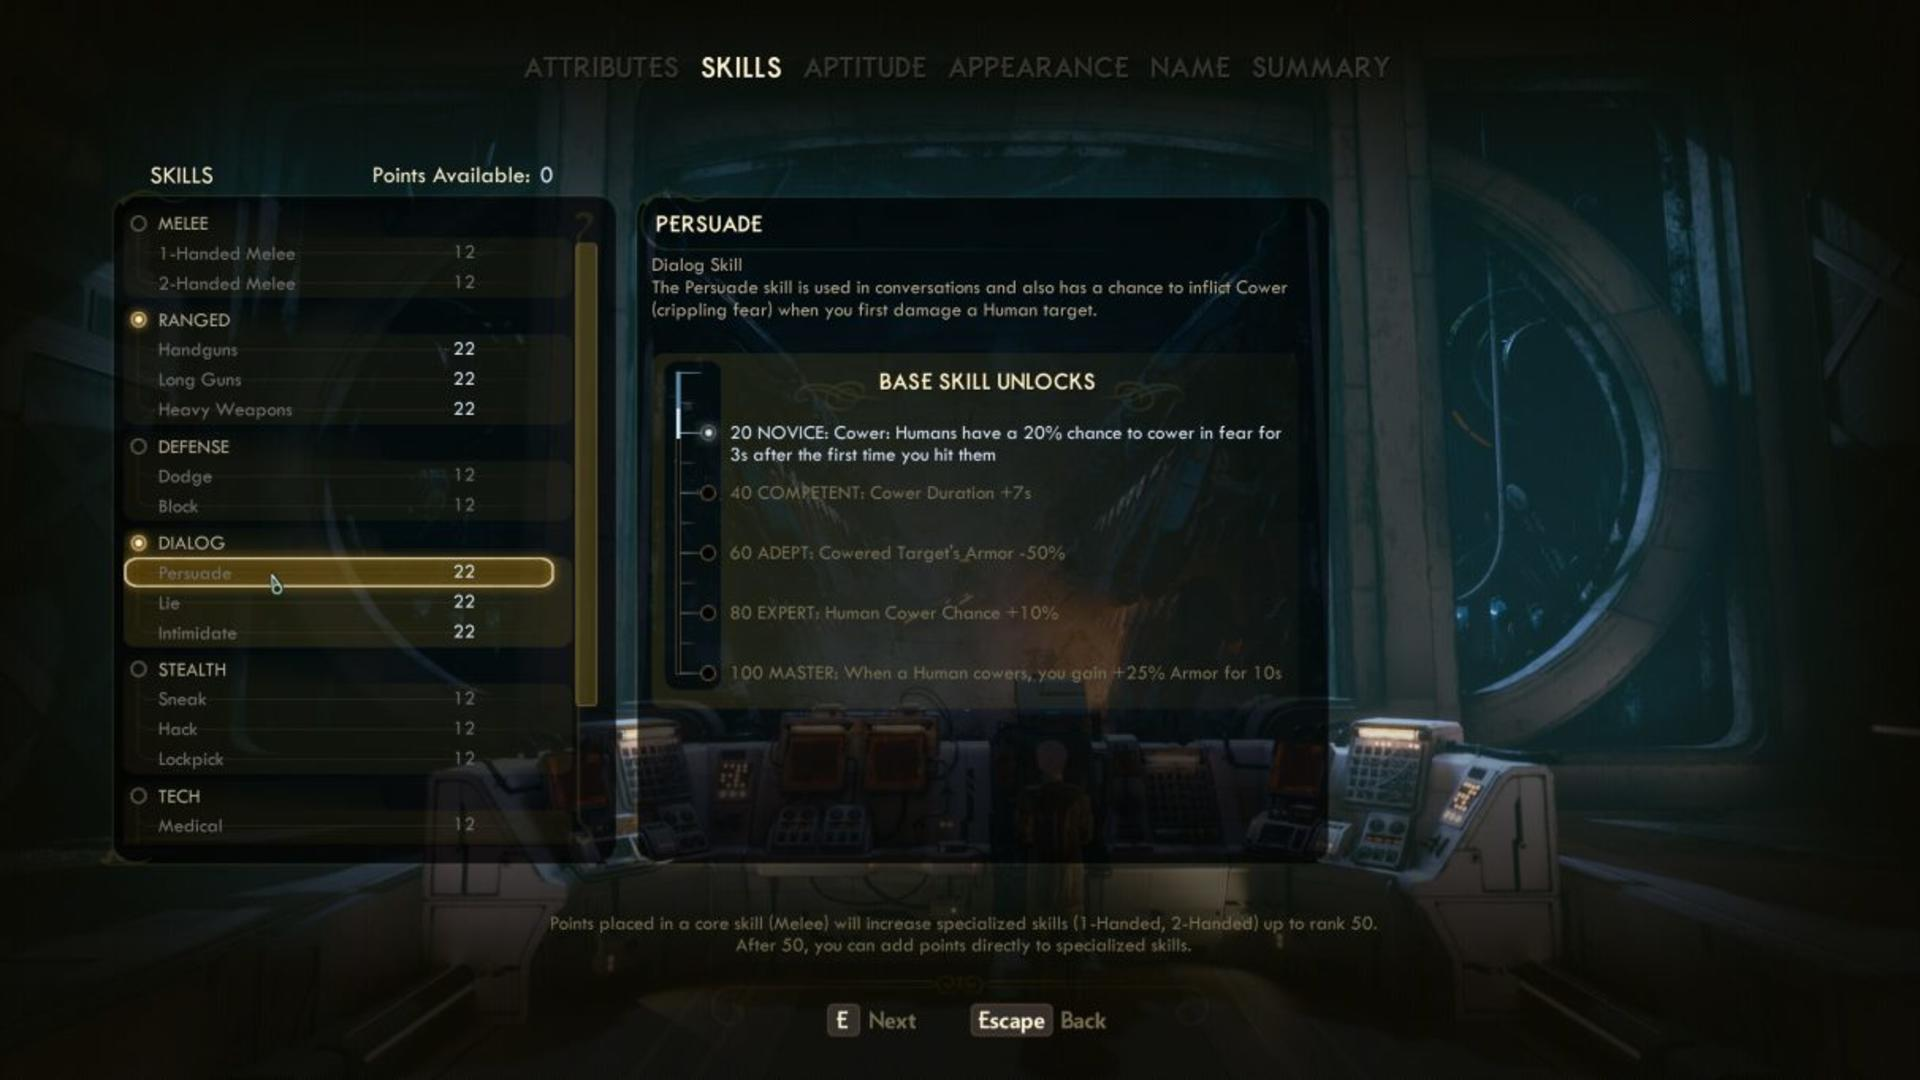 The Outer Worlds skills